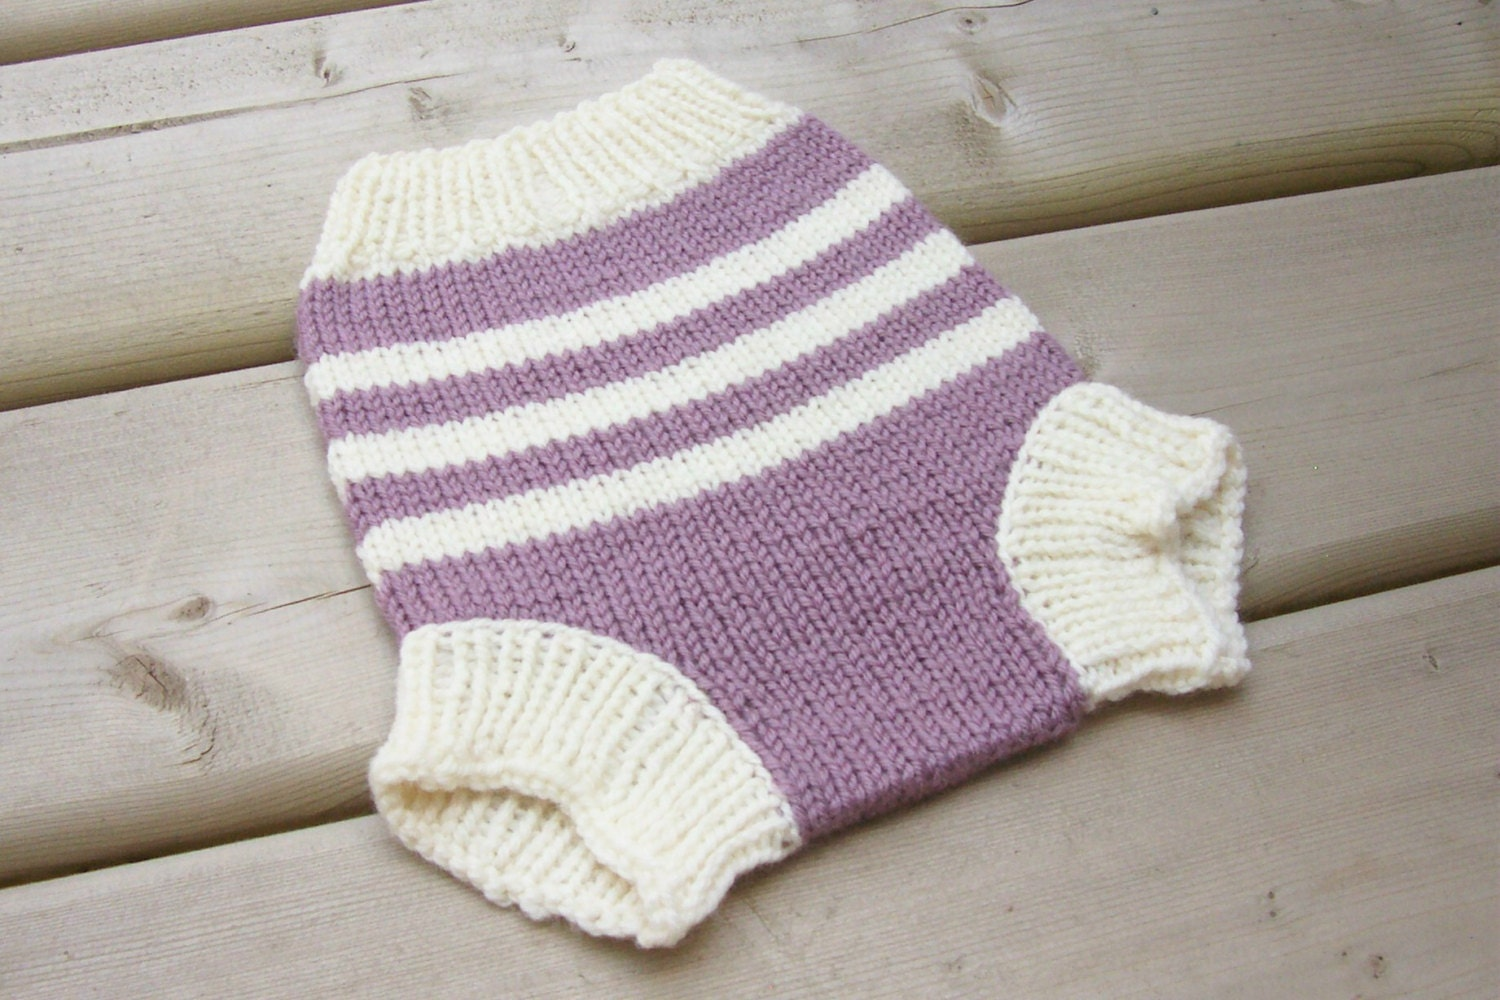 Fantastic Knit Wool Diaper Cover Pattern Ensign - Blanket Knitting ...